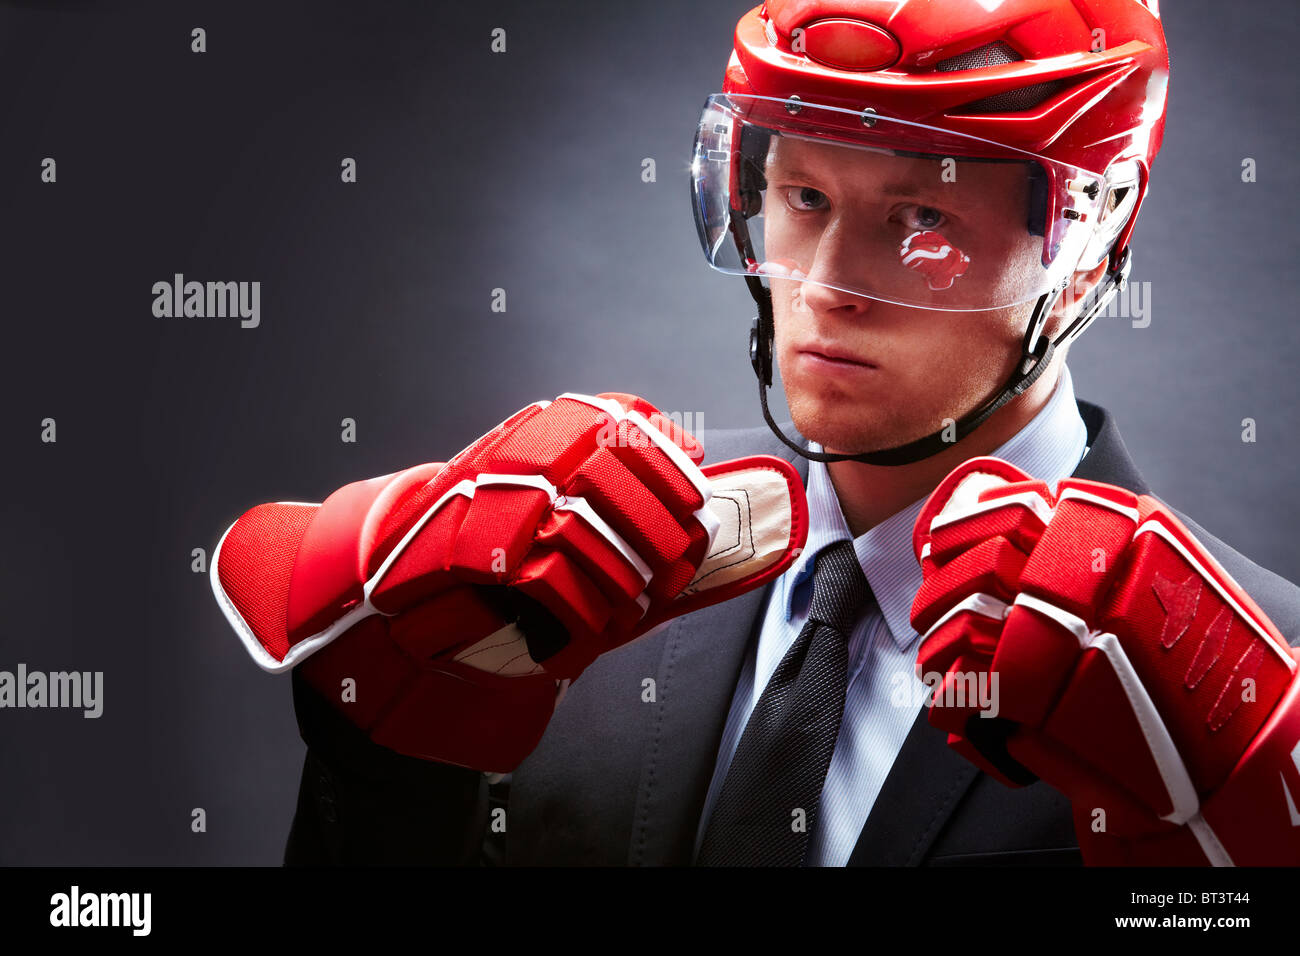 Portrait of sportsman in suit, red gloves and helmet - Stock Image